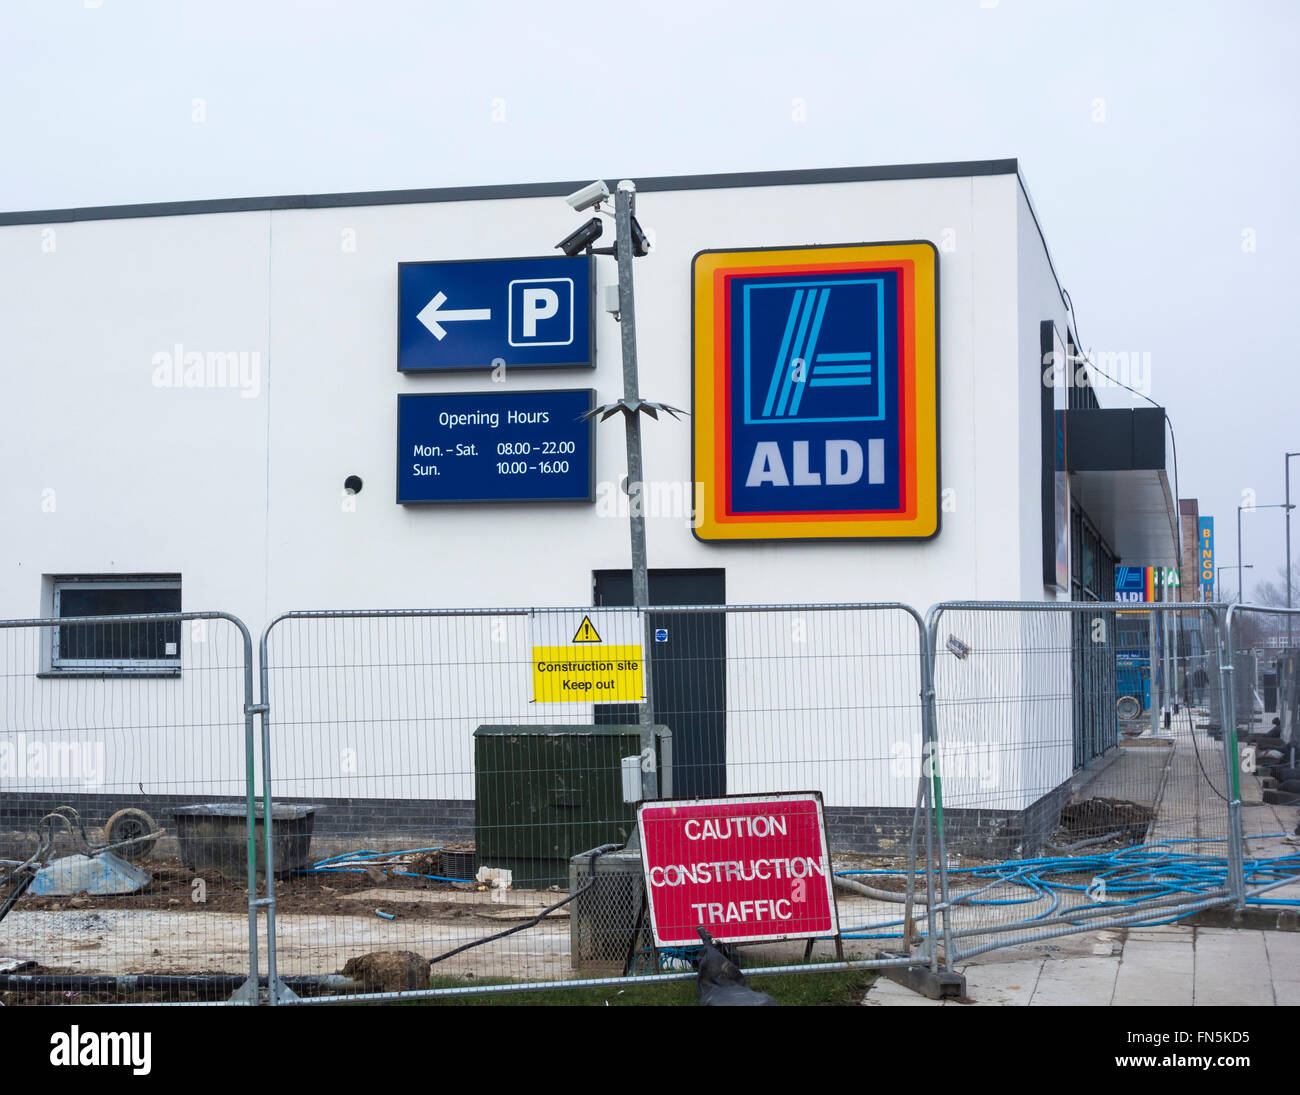 New Aldi supermarket under construction less than 100 metres from Asda store in Billingham, north east England Stock Photo